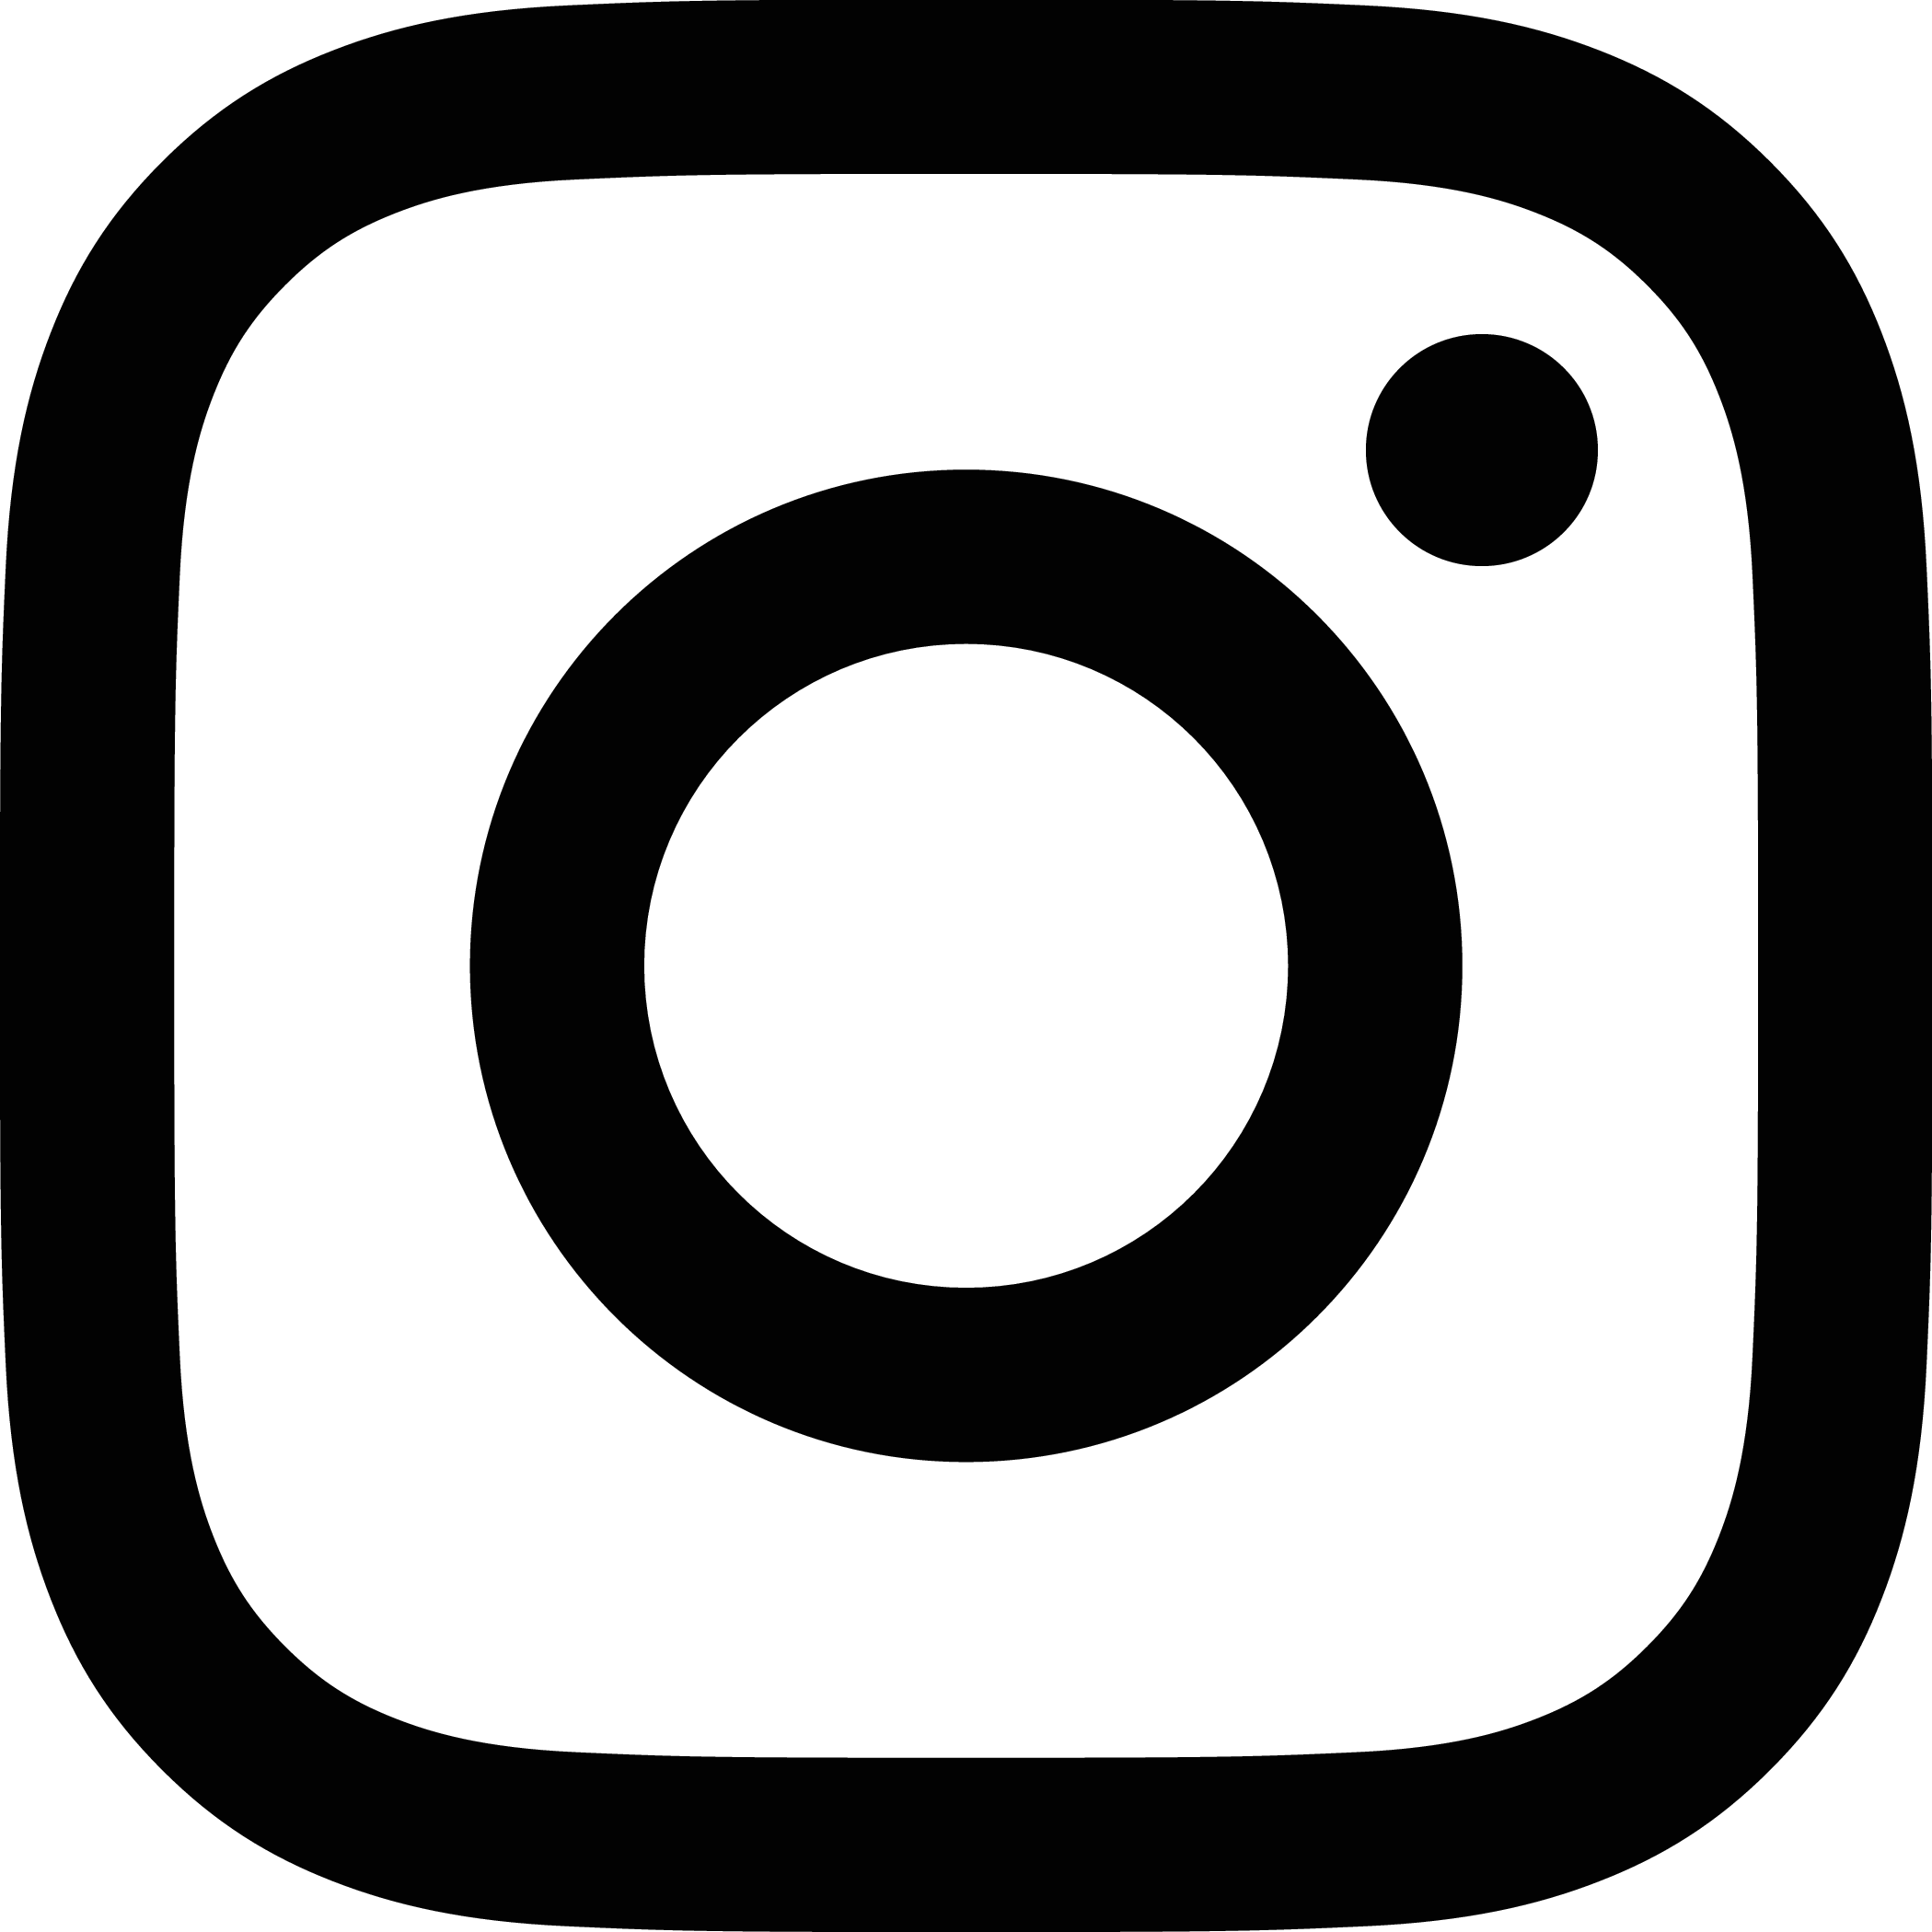 Model 686 PLUS | Instagram logo, Instagram symbols, Instagram icons